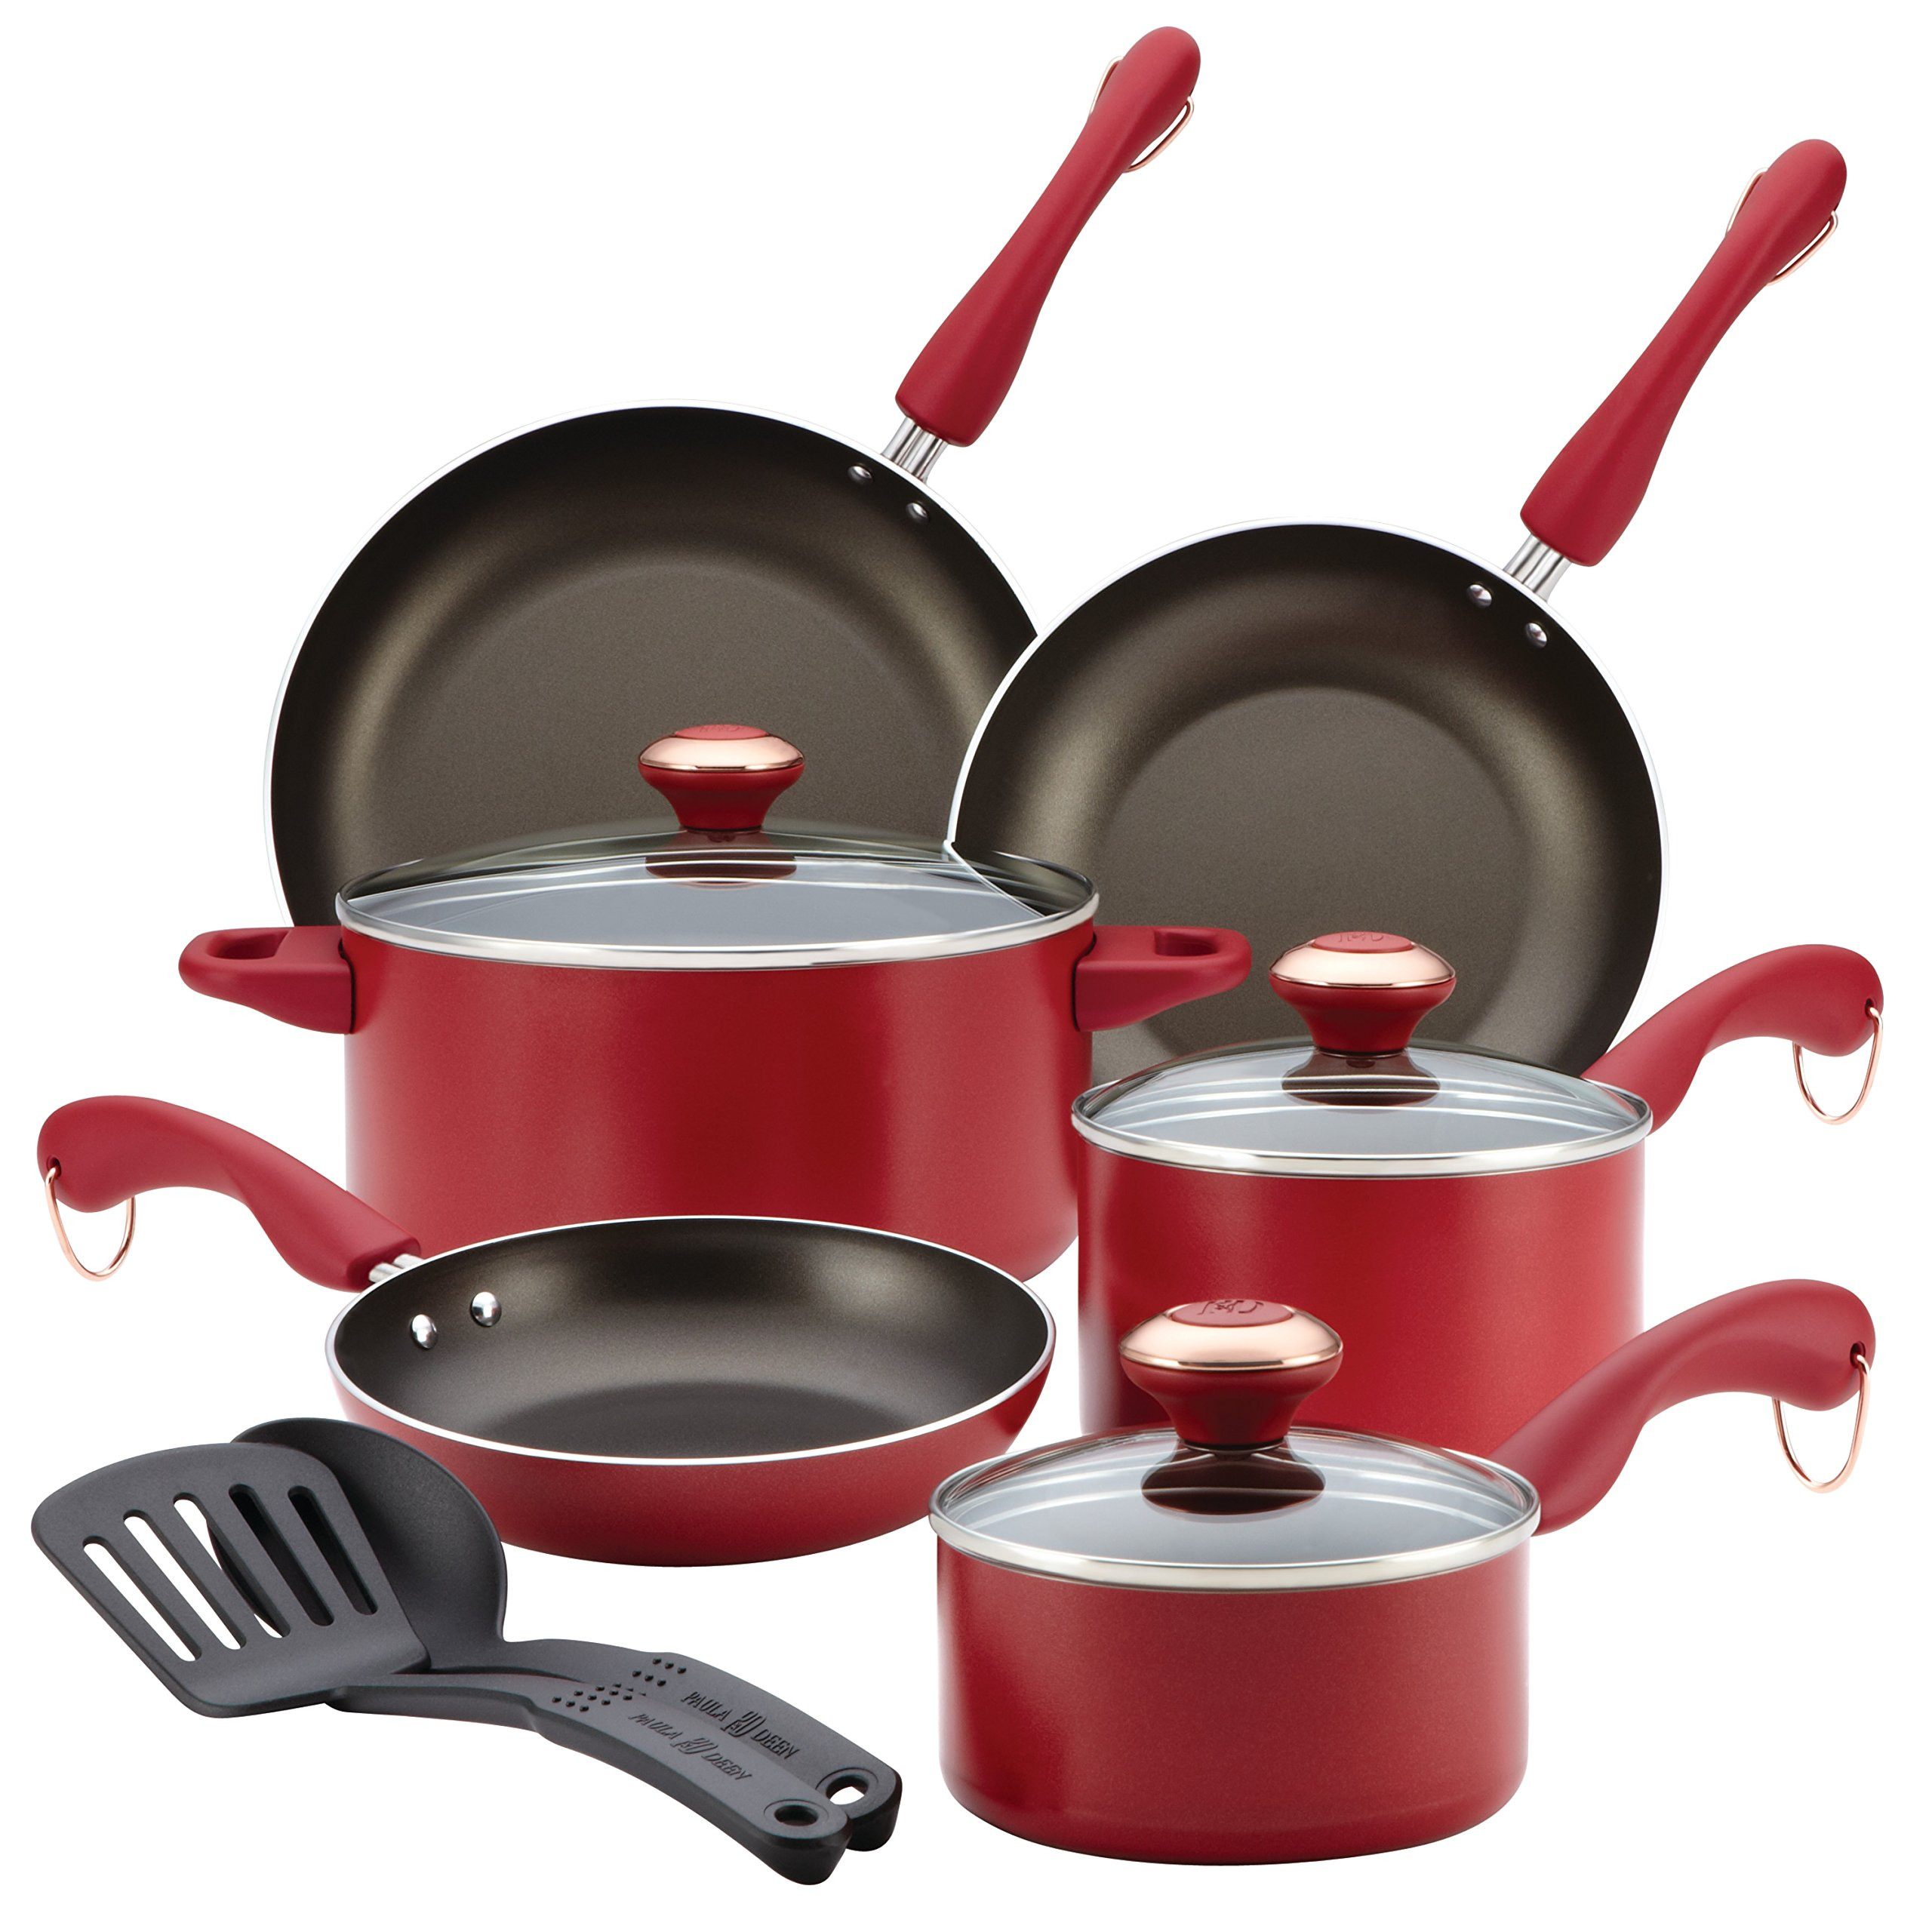 Paula Deen Signature Dishwasher Safe Nonstick 11-Piece Cookware Set, Red